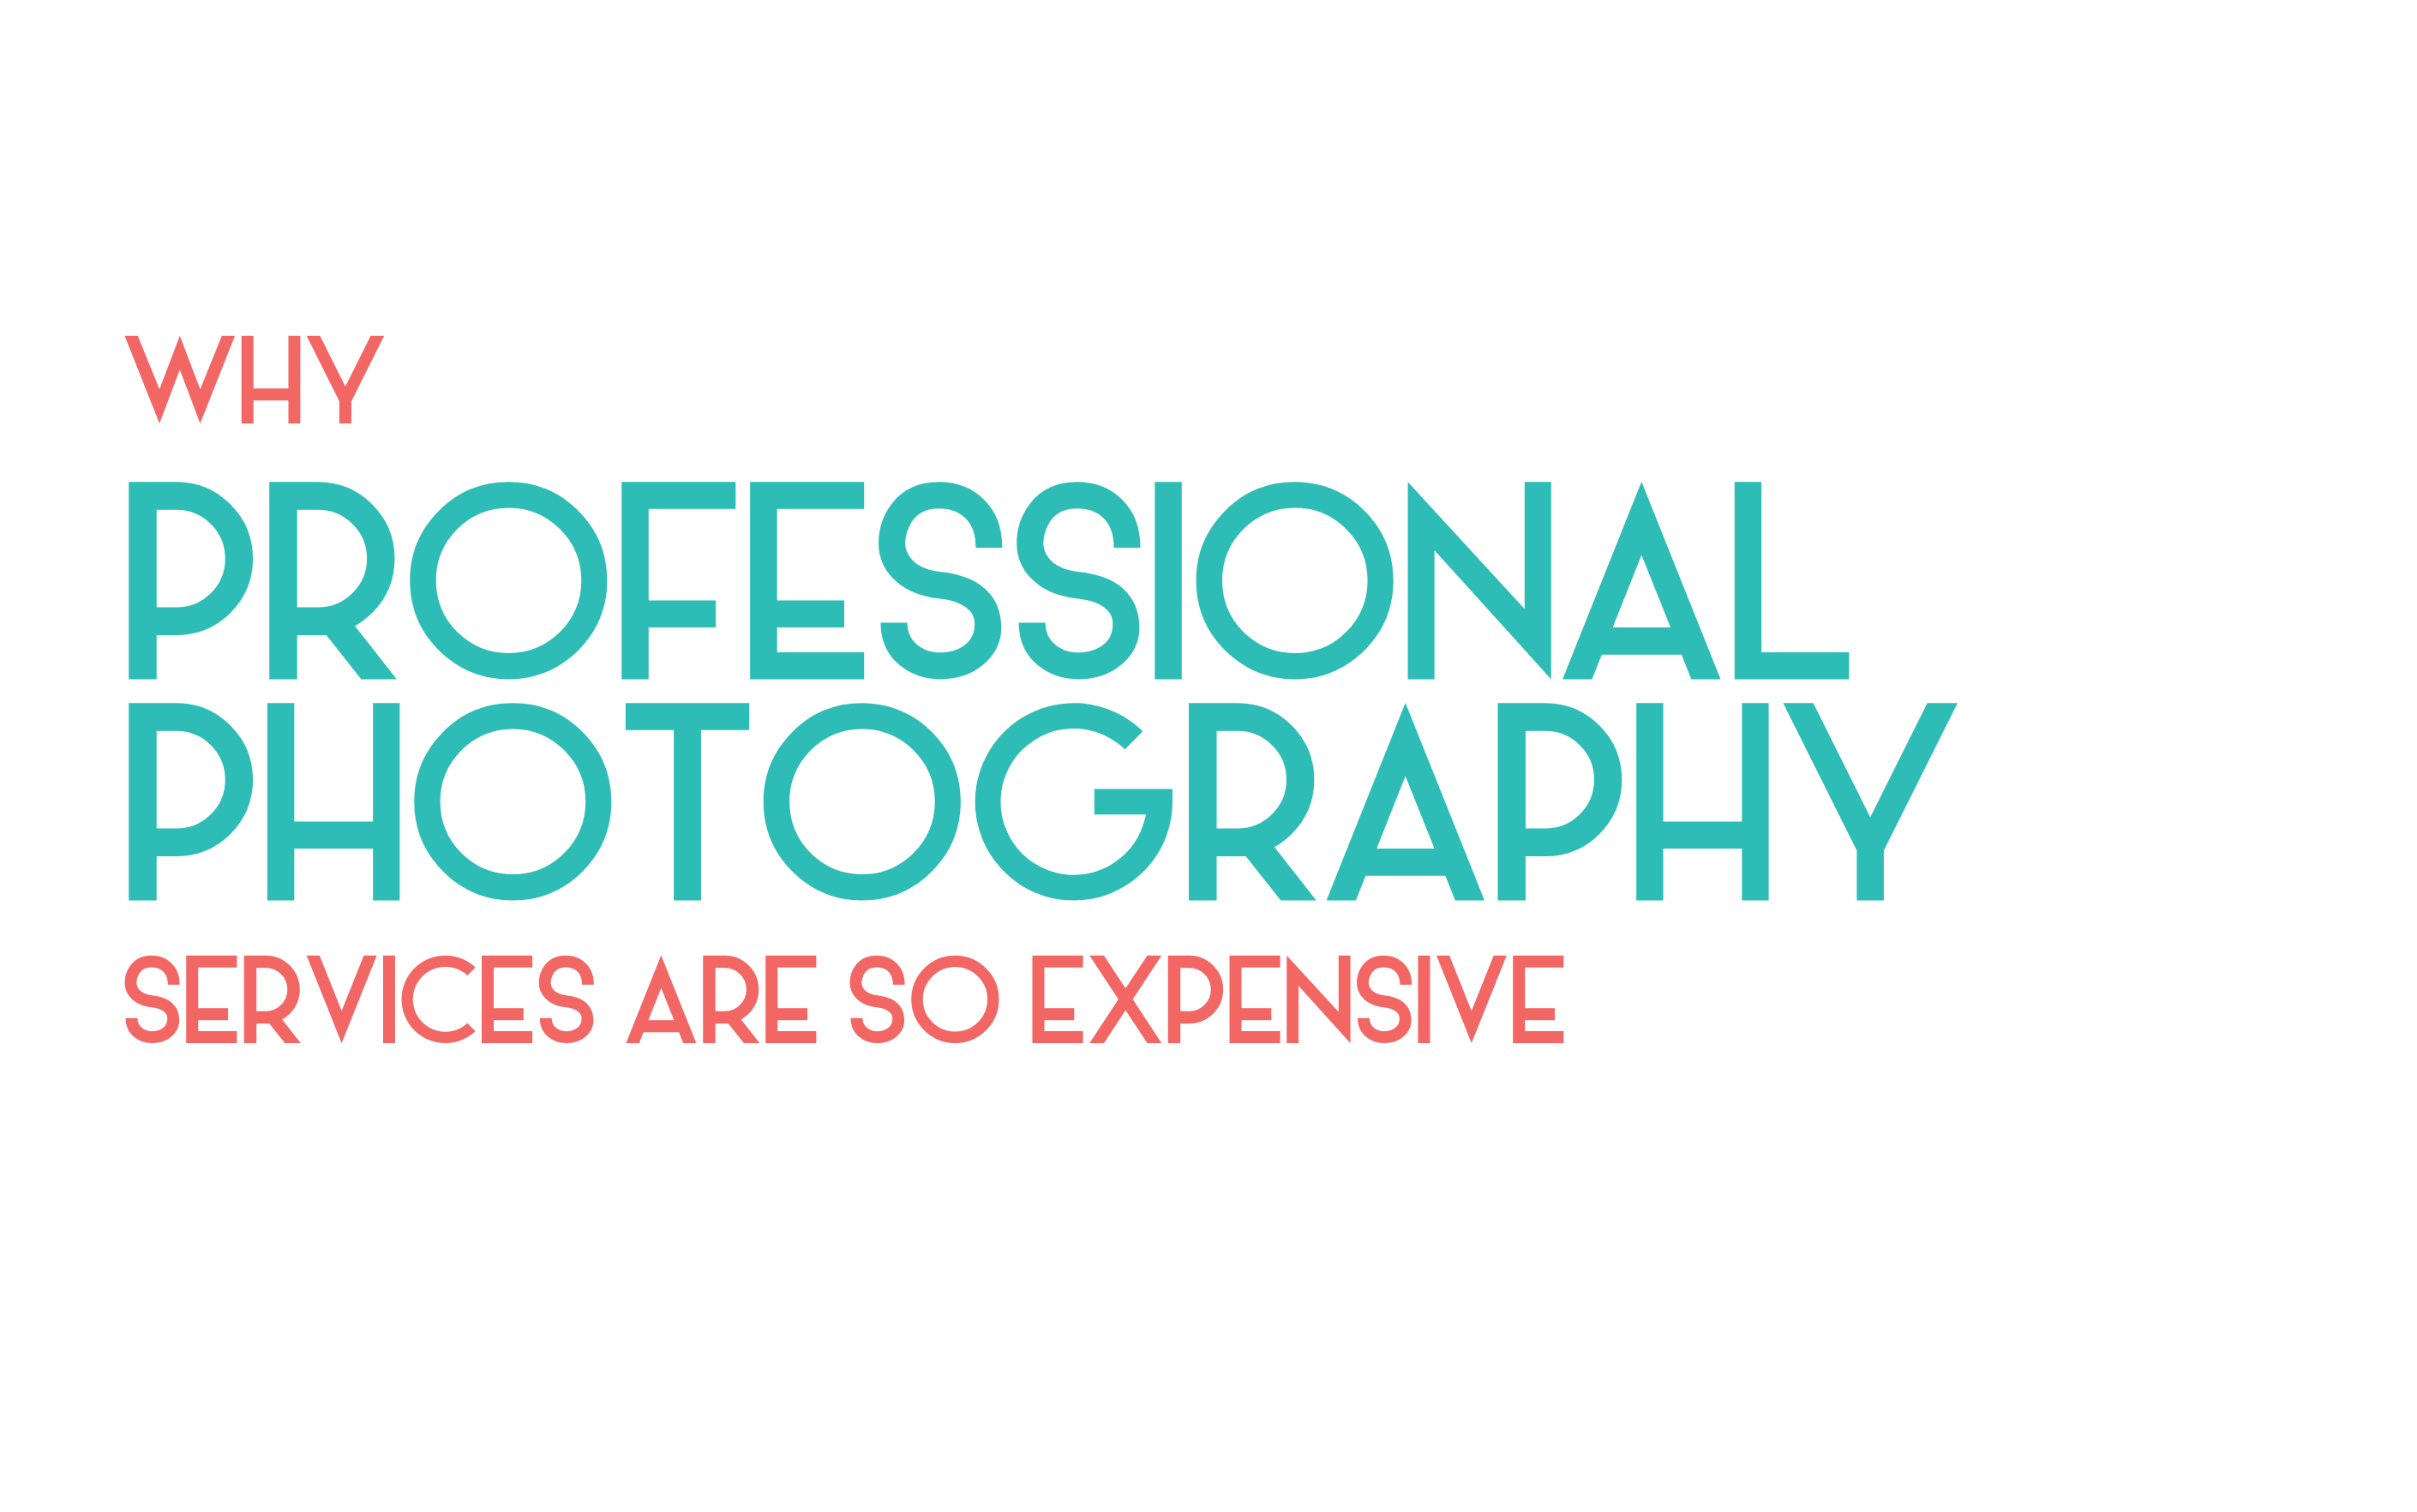 Why is a professional photographer so expensive?